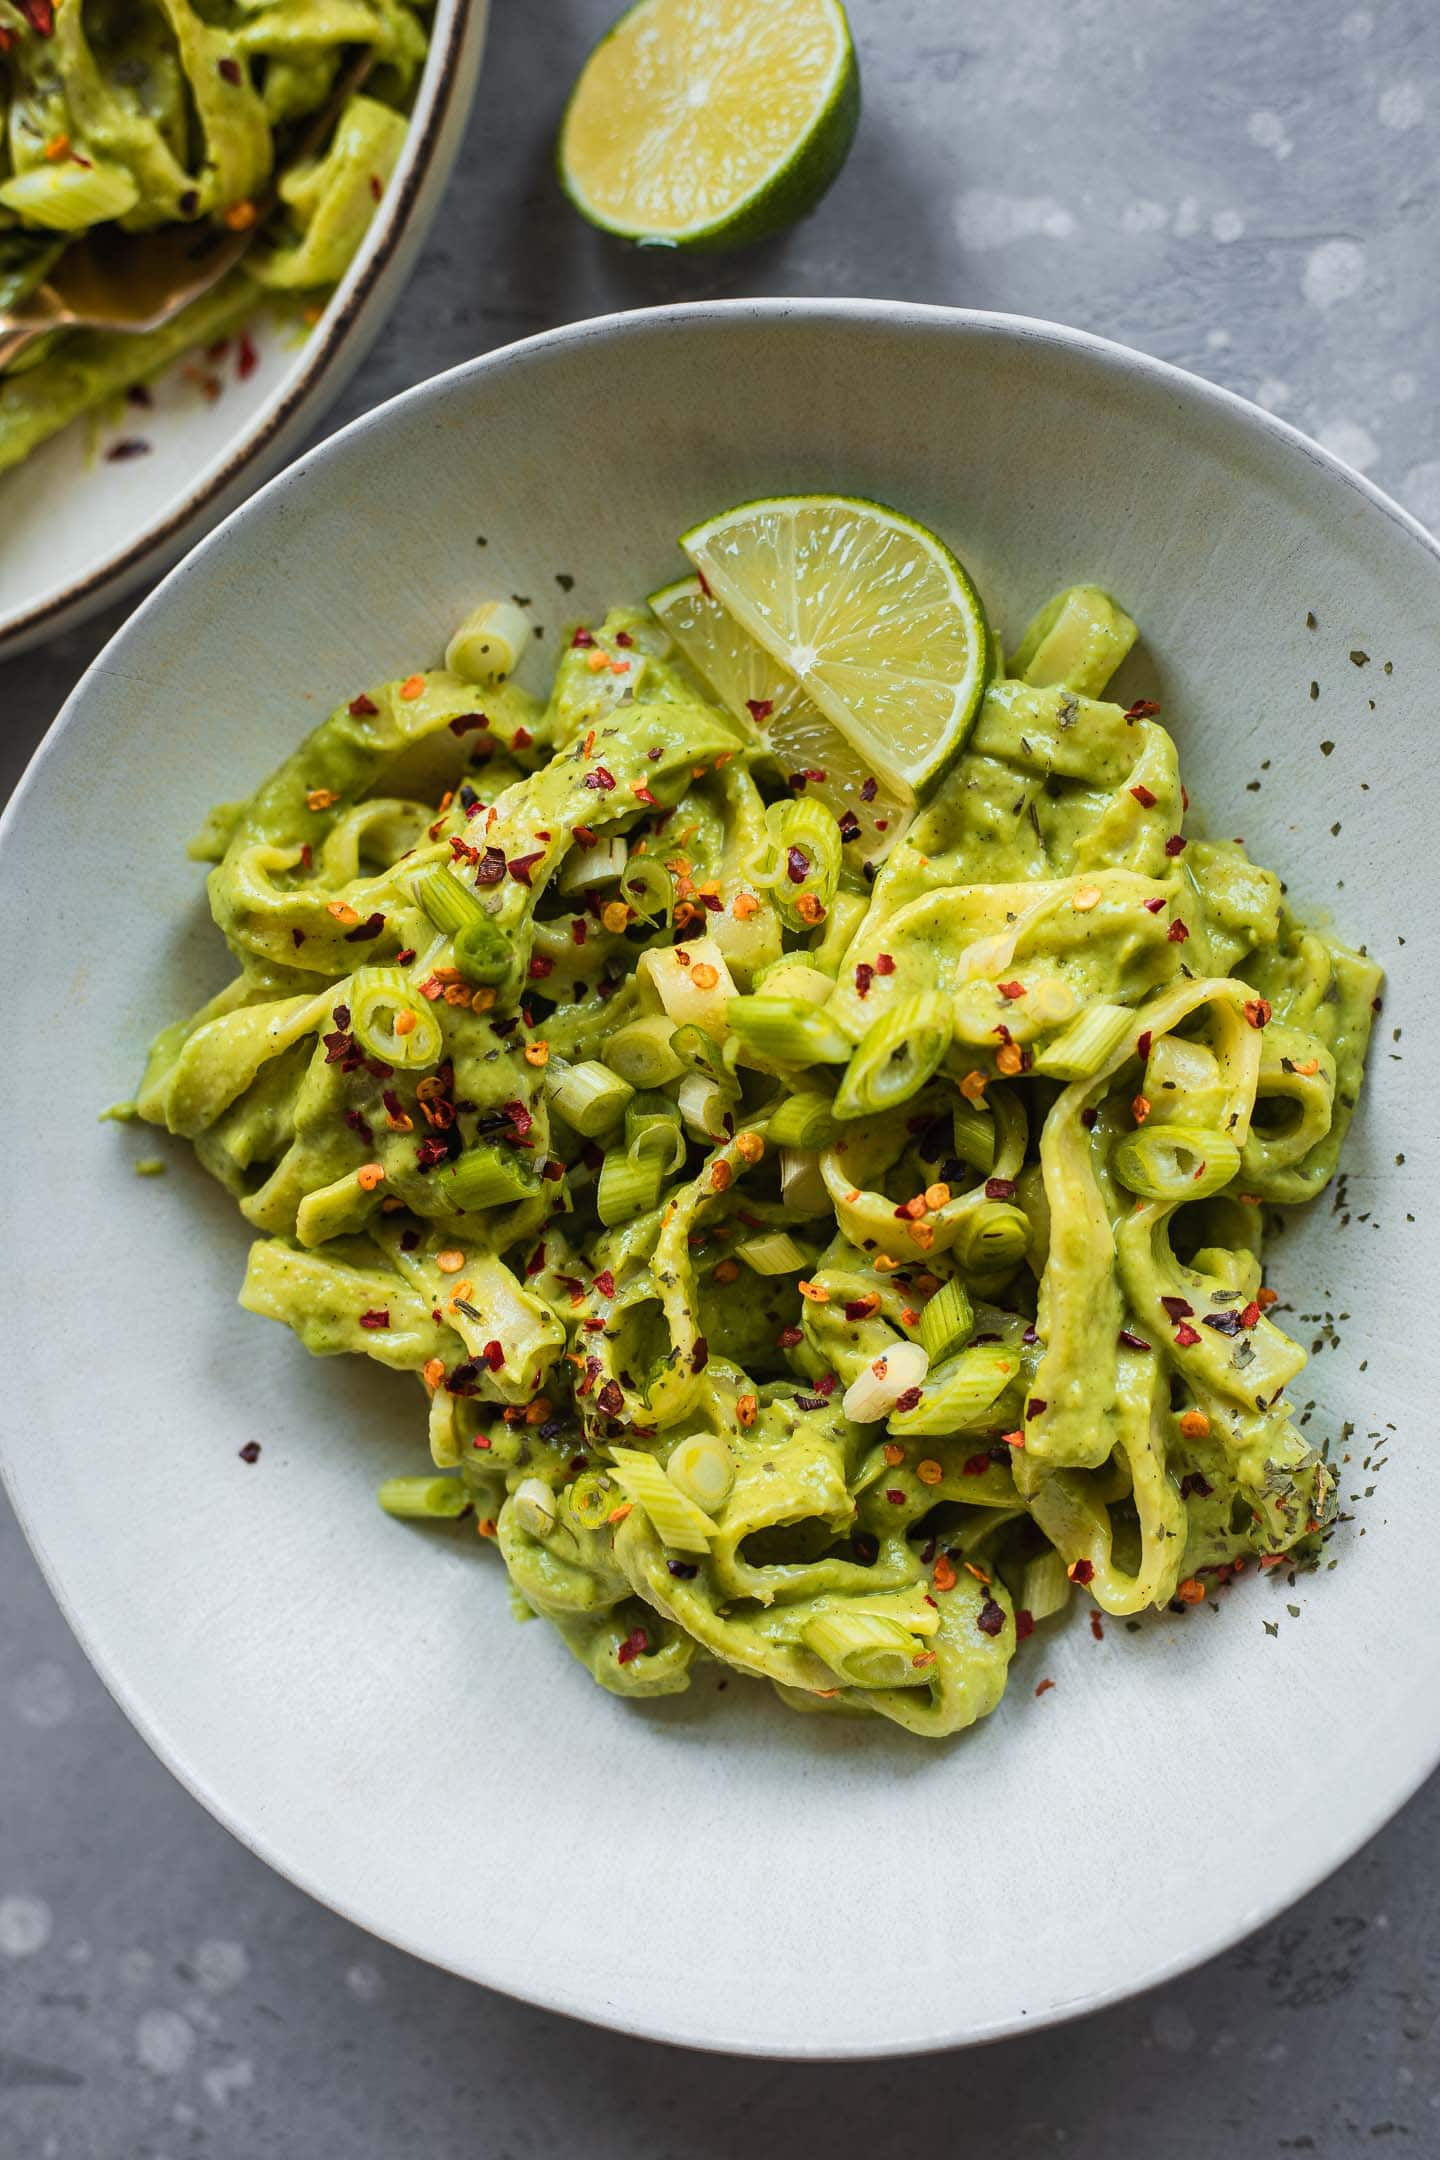 Bowl of avocado pasta with lime